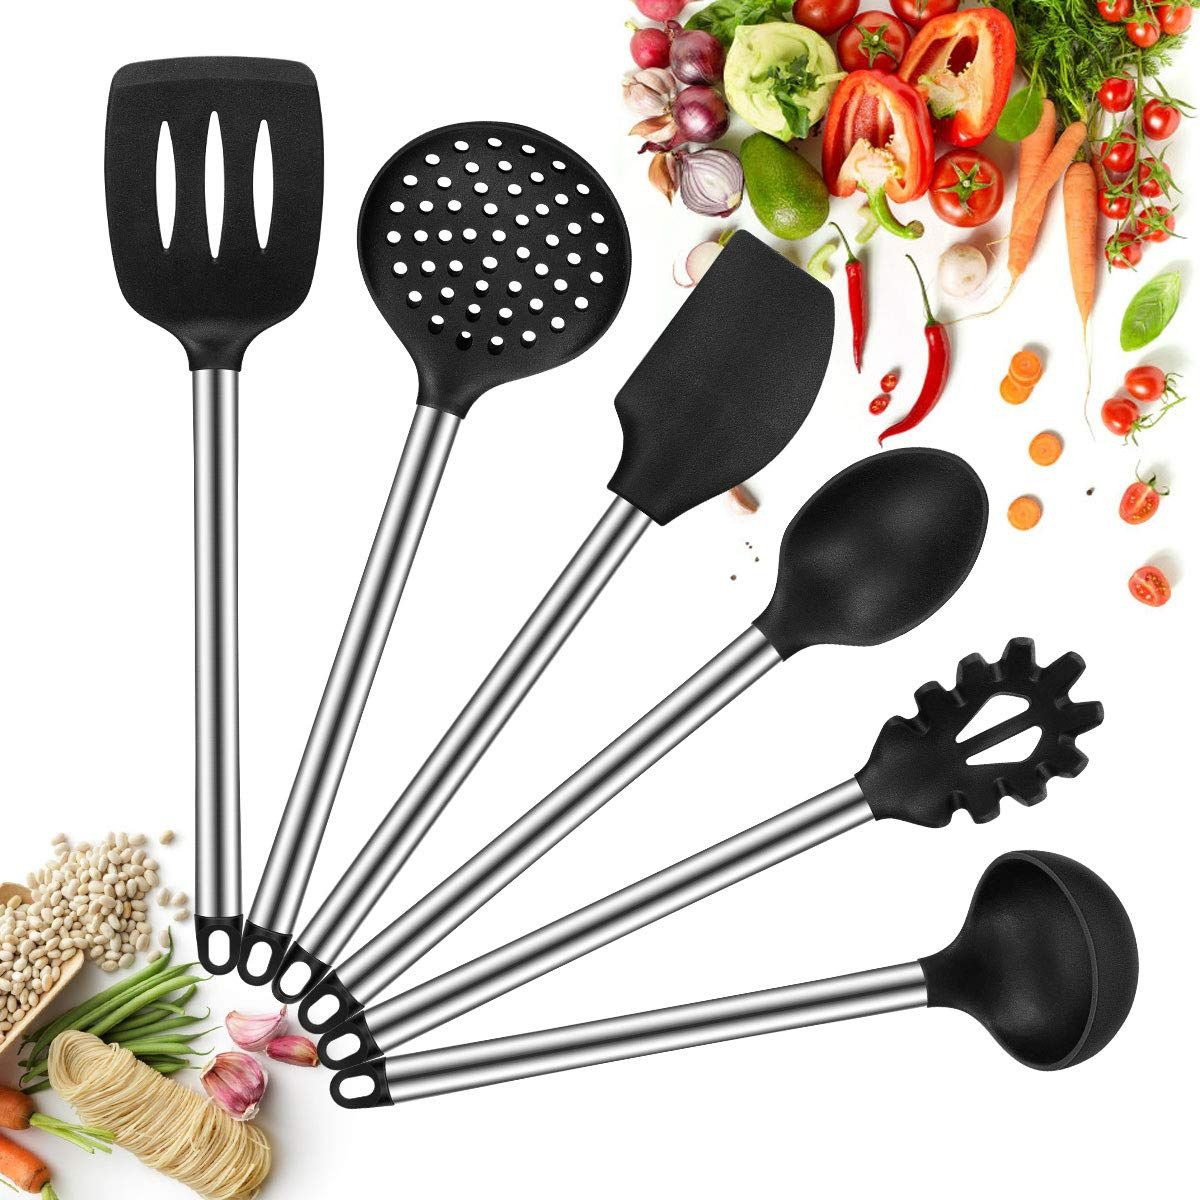 Silicone Kitchen Utensils Set 6 Piece Cooking Utensil Non Stick